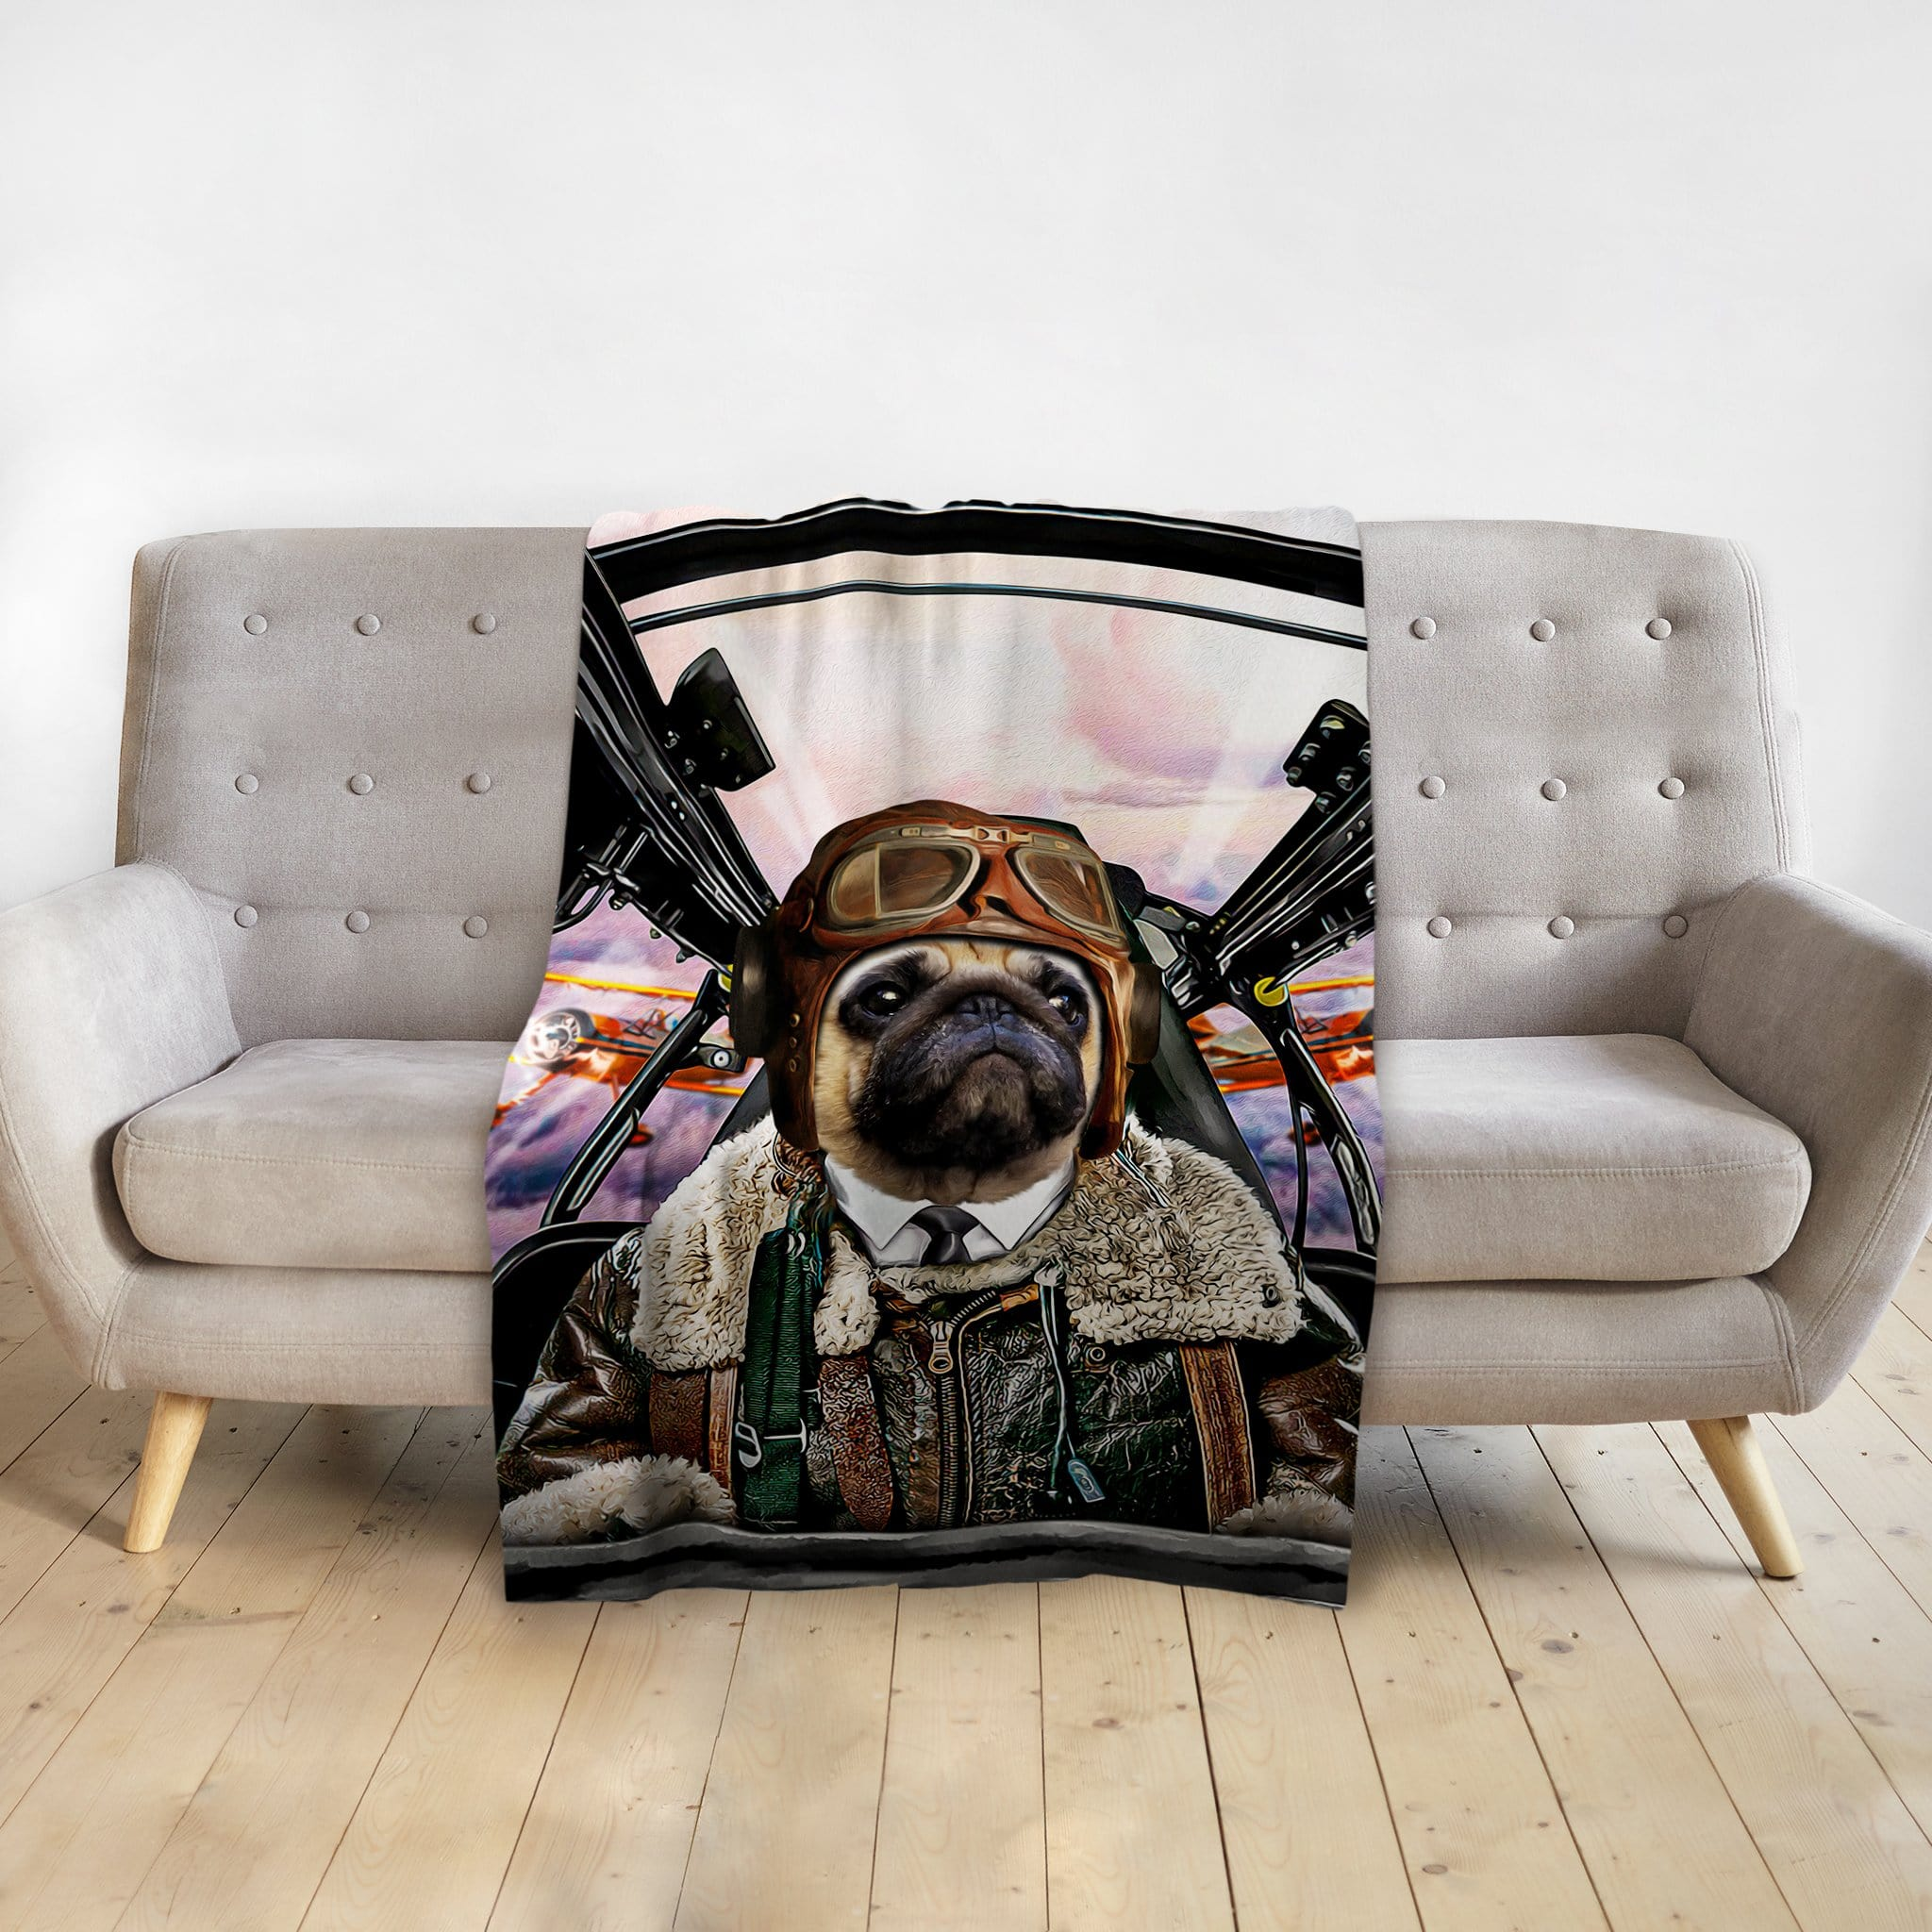 'The Pilot' Personalized Pet Blanket